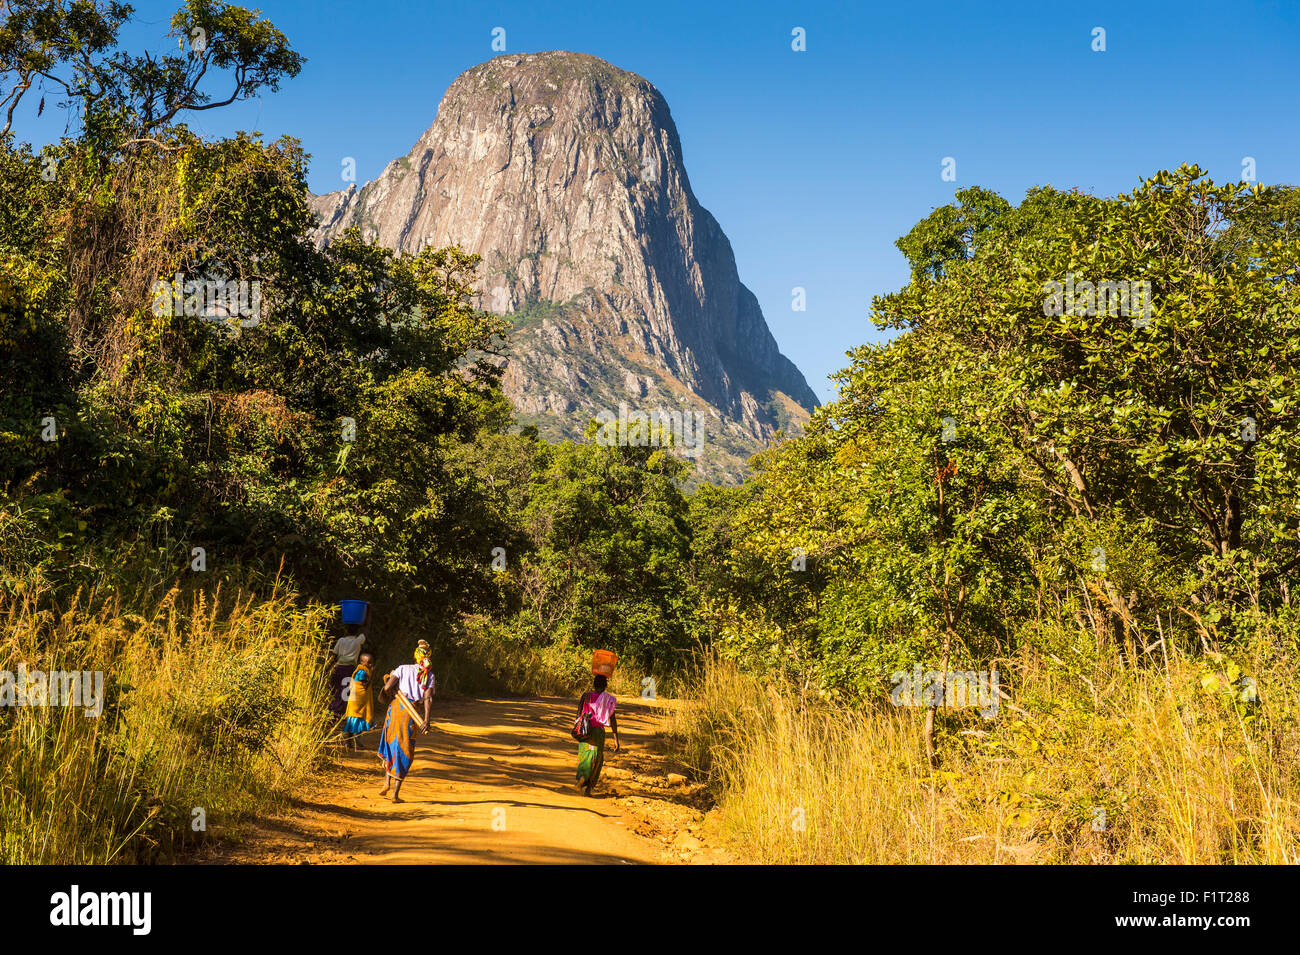 Dusty track laeding to the granite peaks of Mount Mulanje, Malawi, Africa - Stock Image